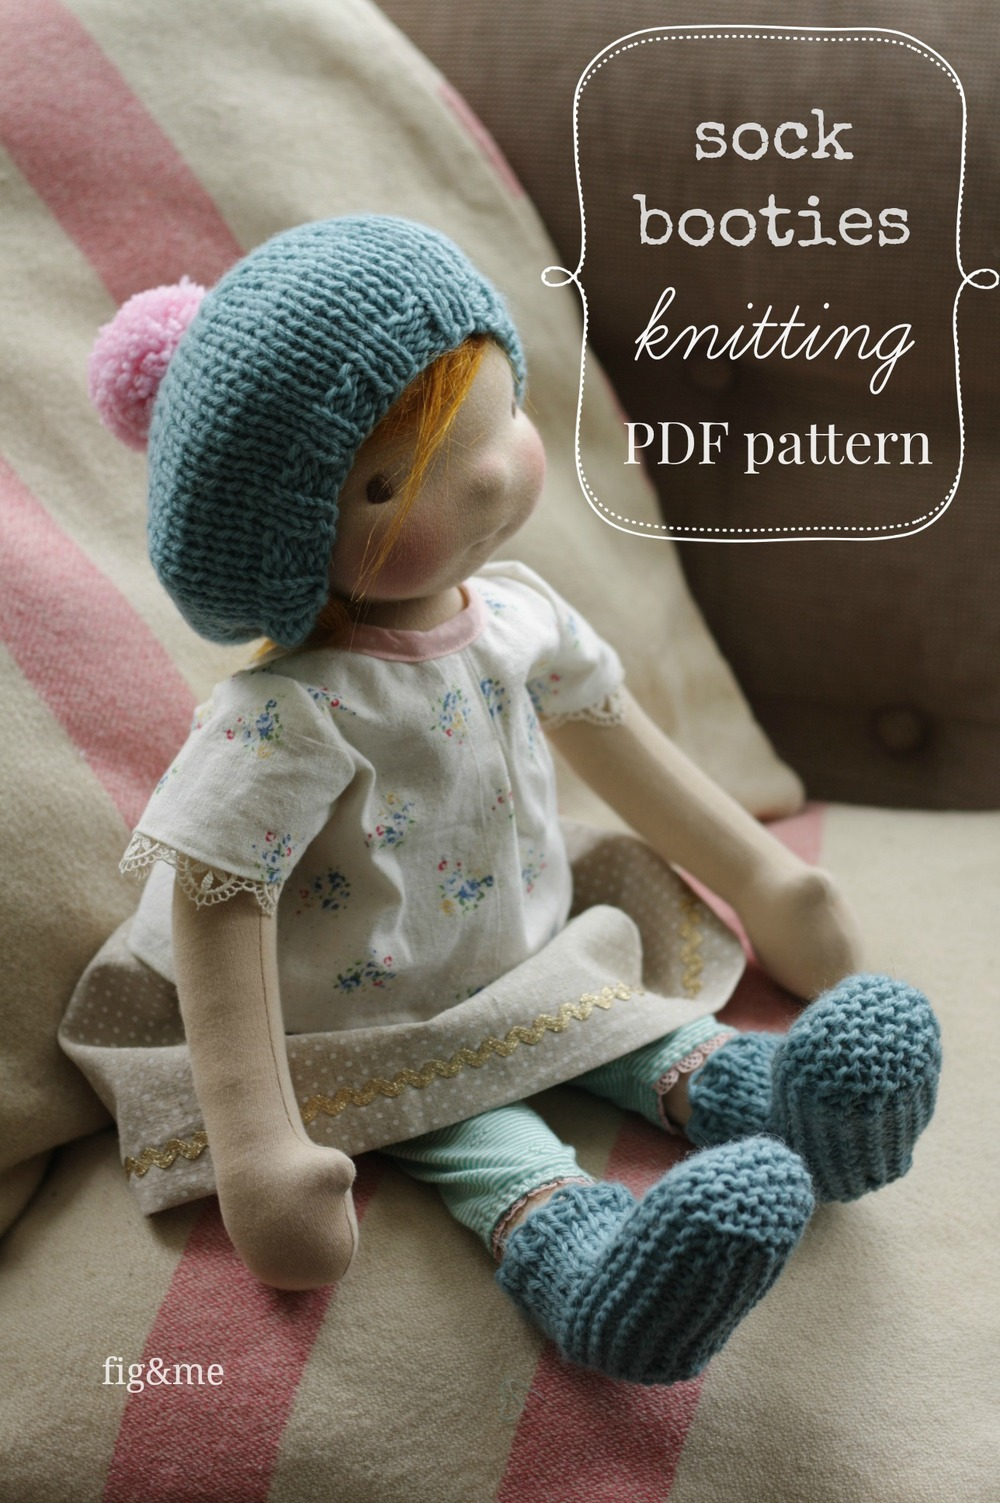 Sock Knitting Pattern Generator : A new pattern for cozy feet, sock booties.   fig & me